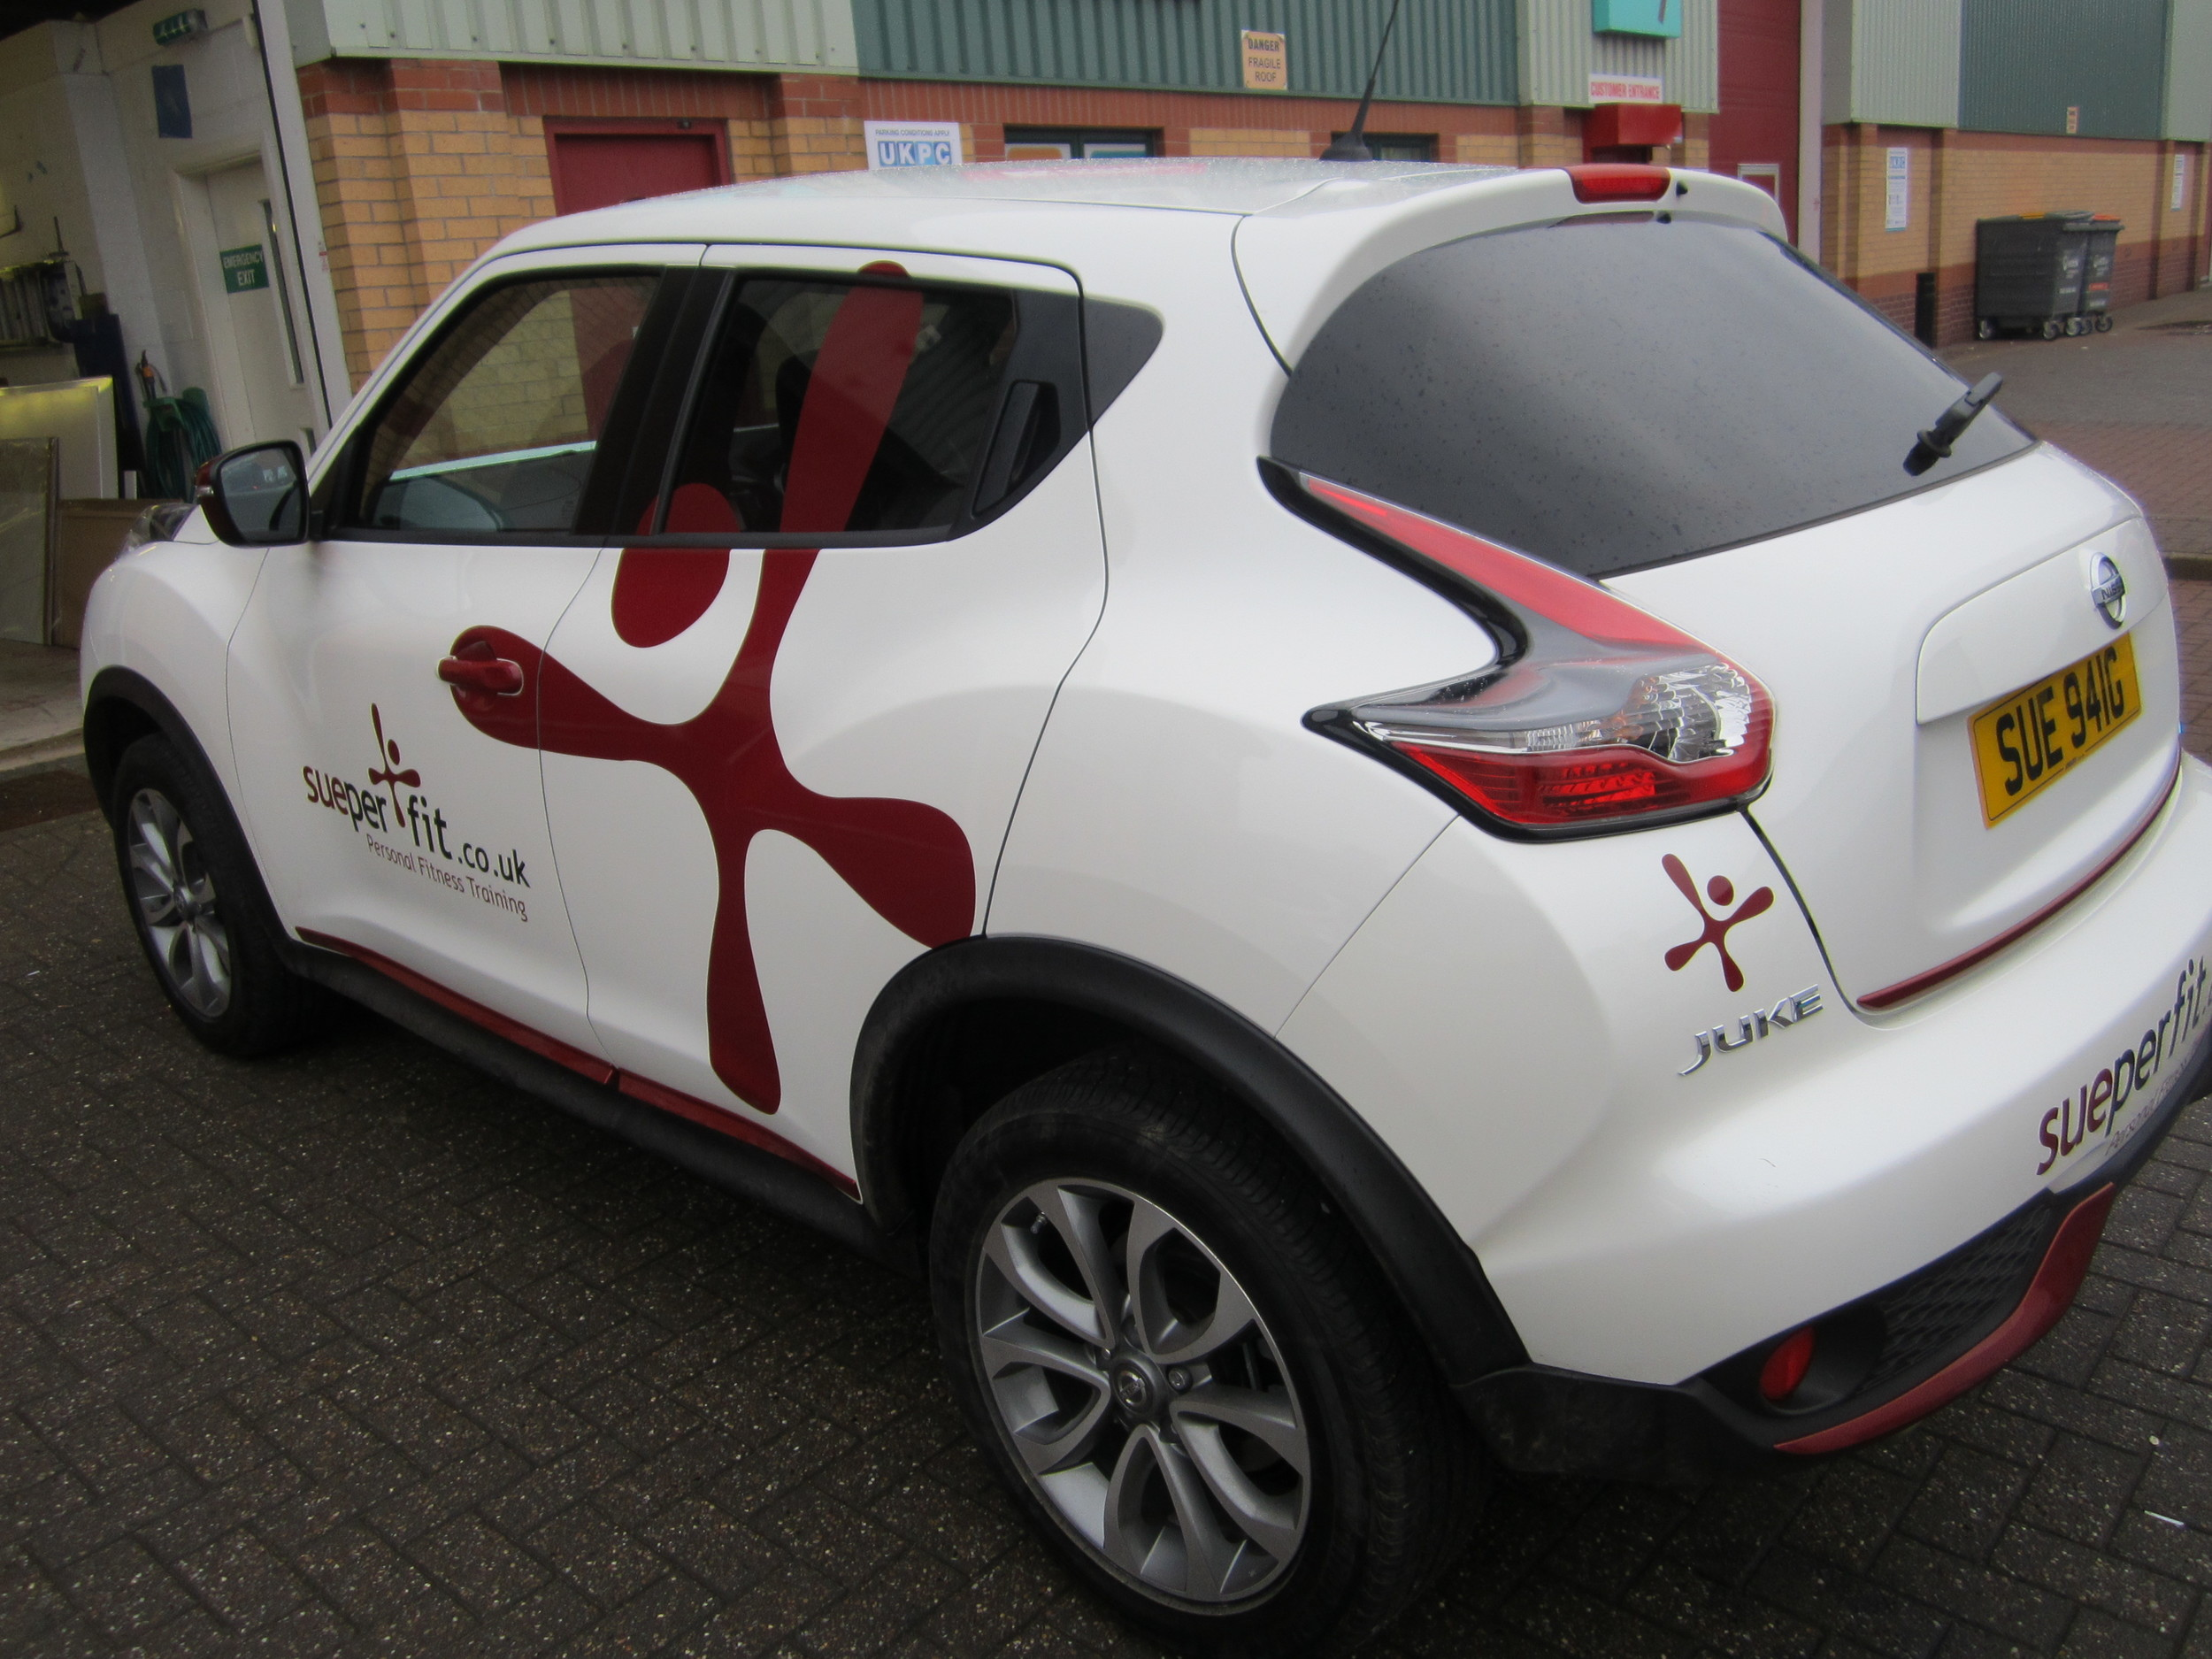 Sueperfit Vehicle Graphics